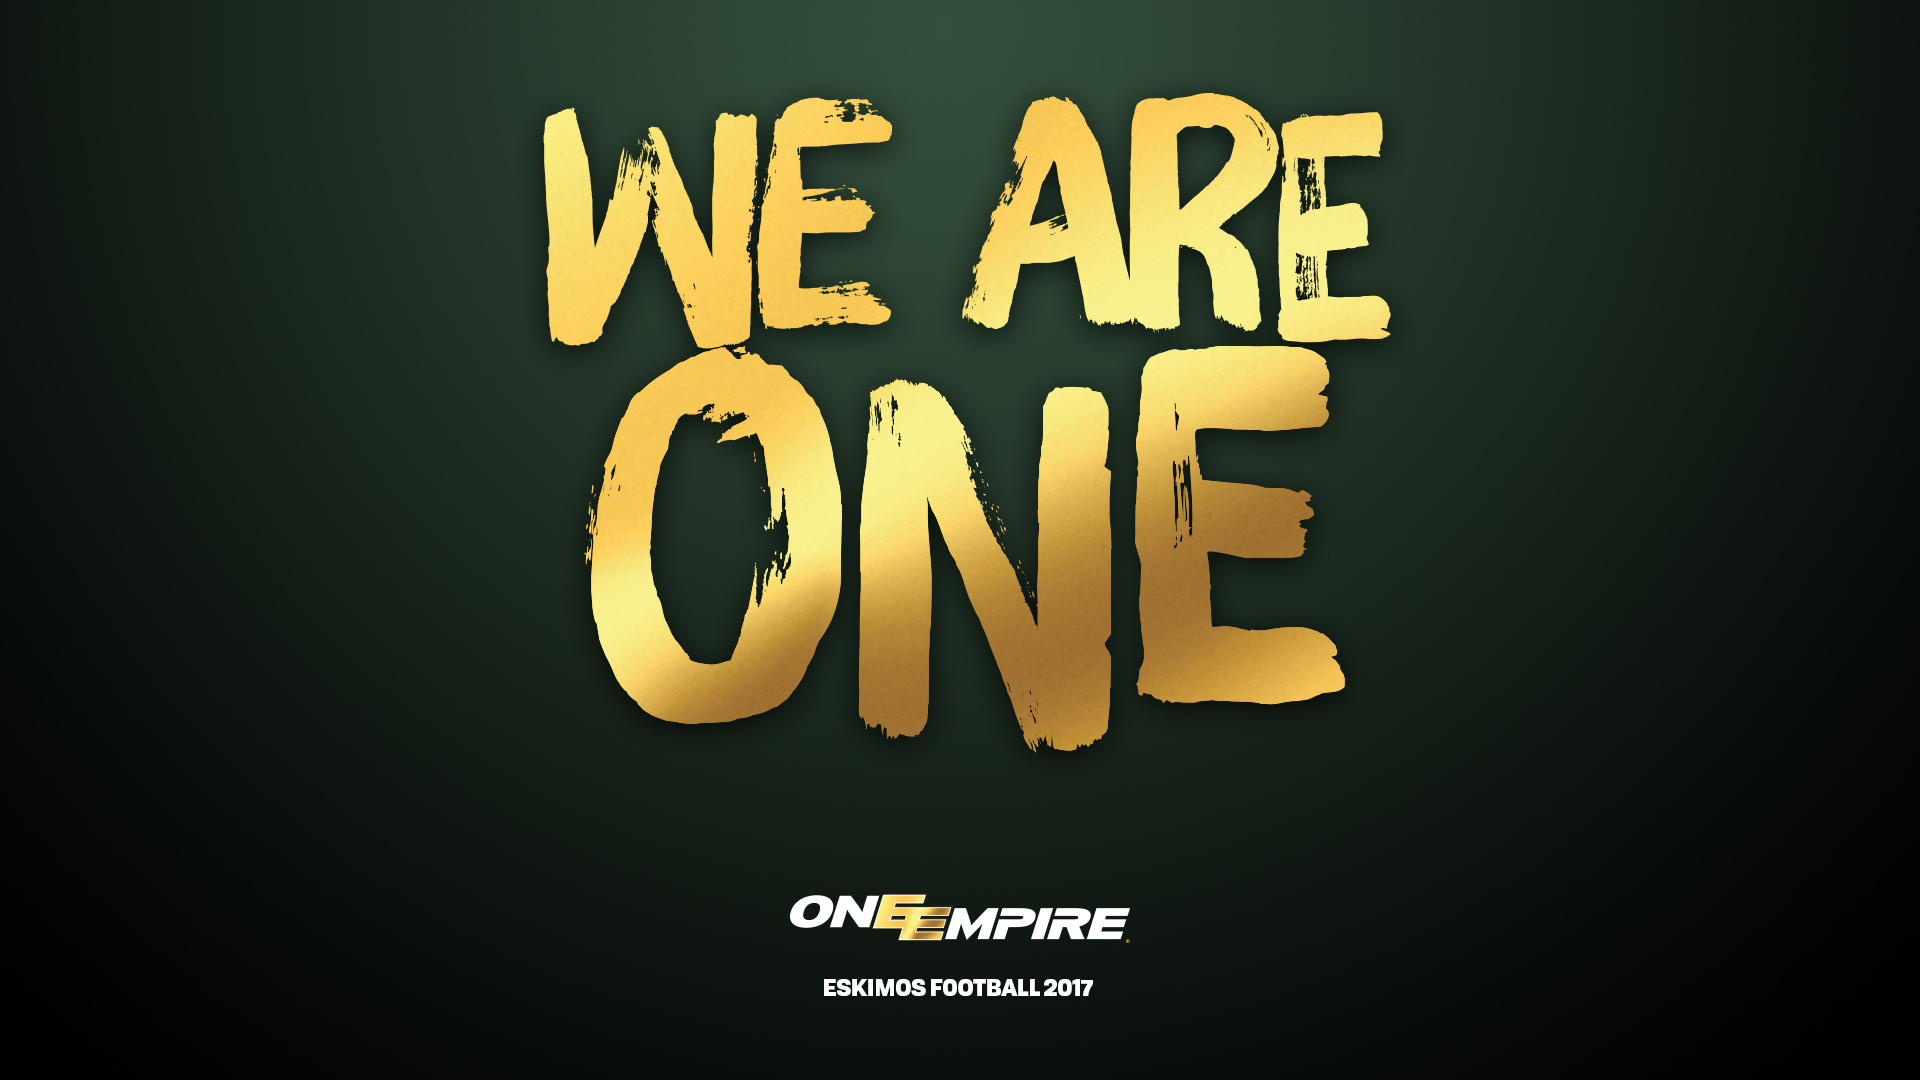 One Empire_BG_WeAreGreenBG